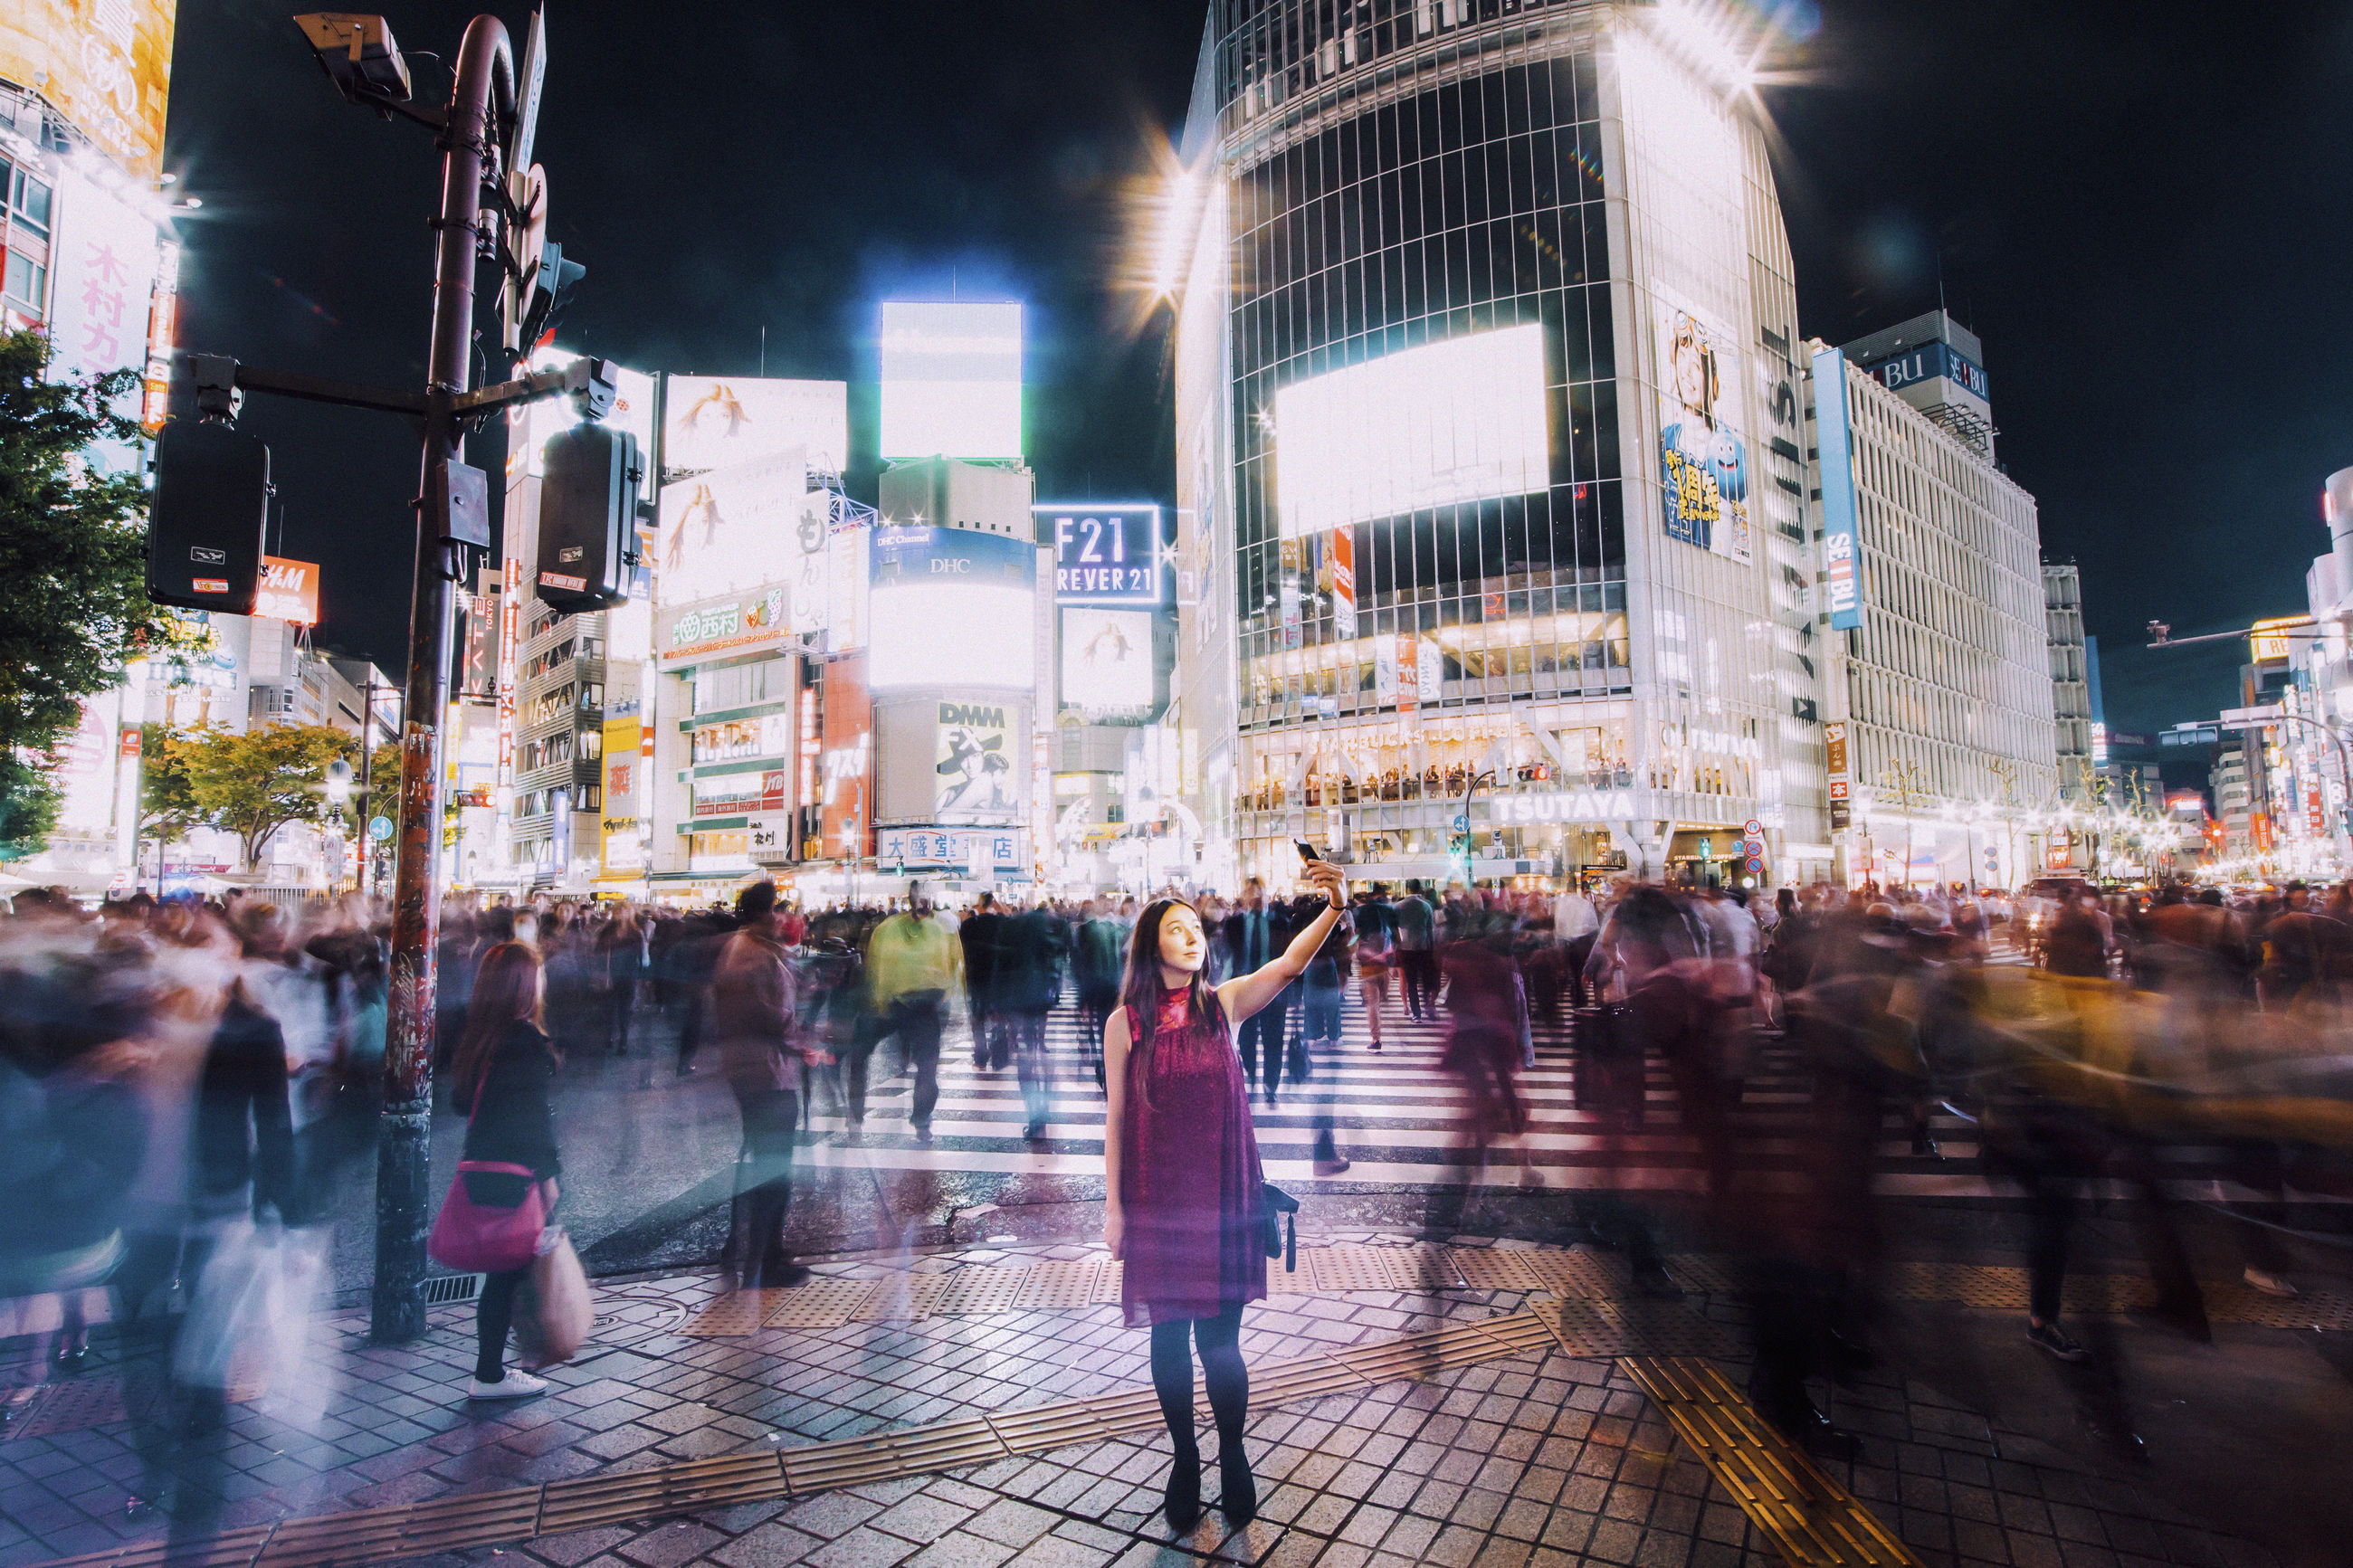 city, night, building exterior, real people, illuminated, architecture, group of people, blurred motion, built structure, motion, large group of people, crowd, city life, street, women, adult, walking, lifestyles, men, outdoors, office building exterior, busy